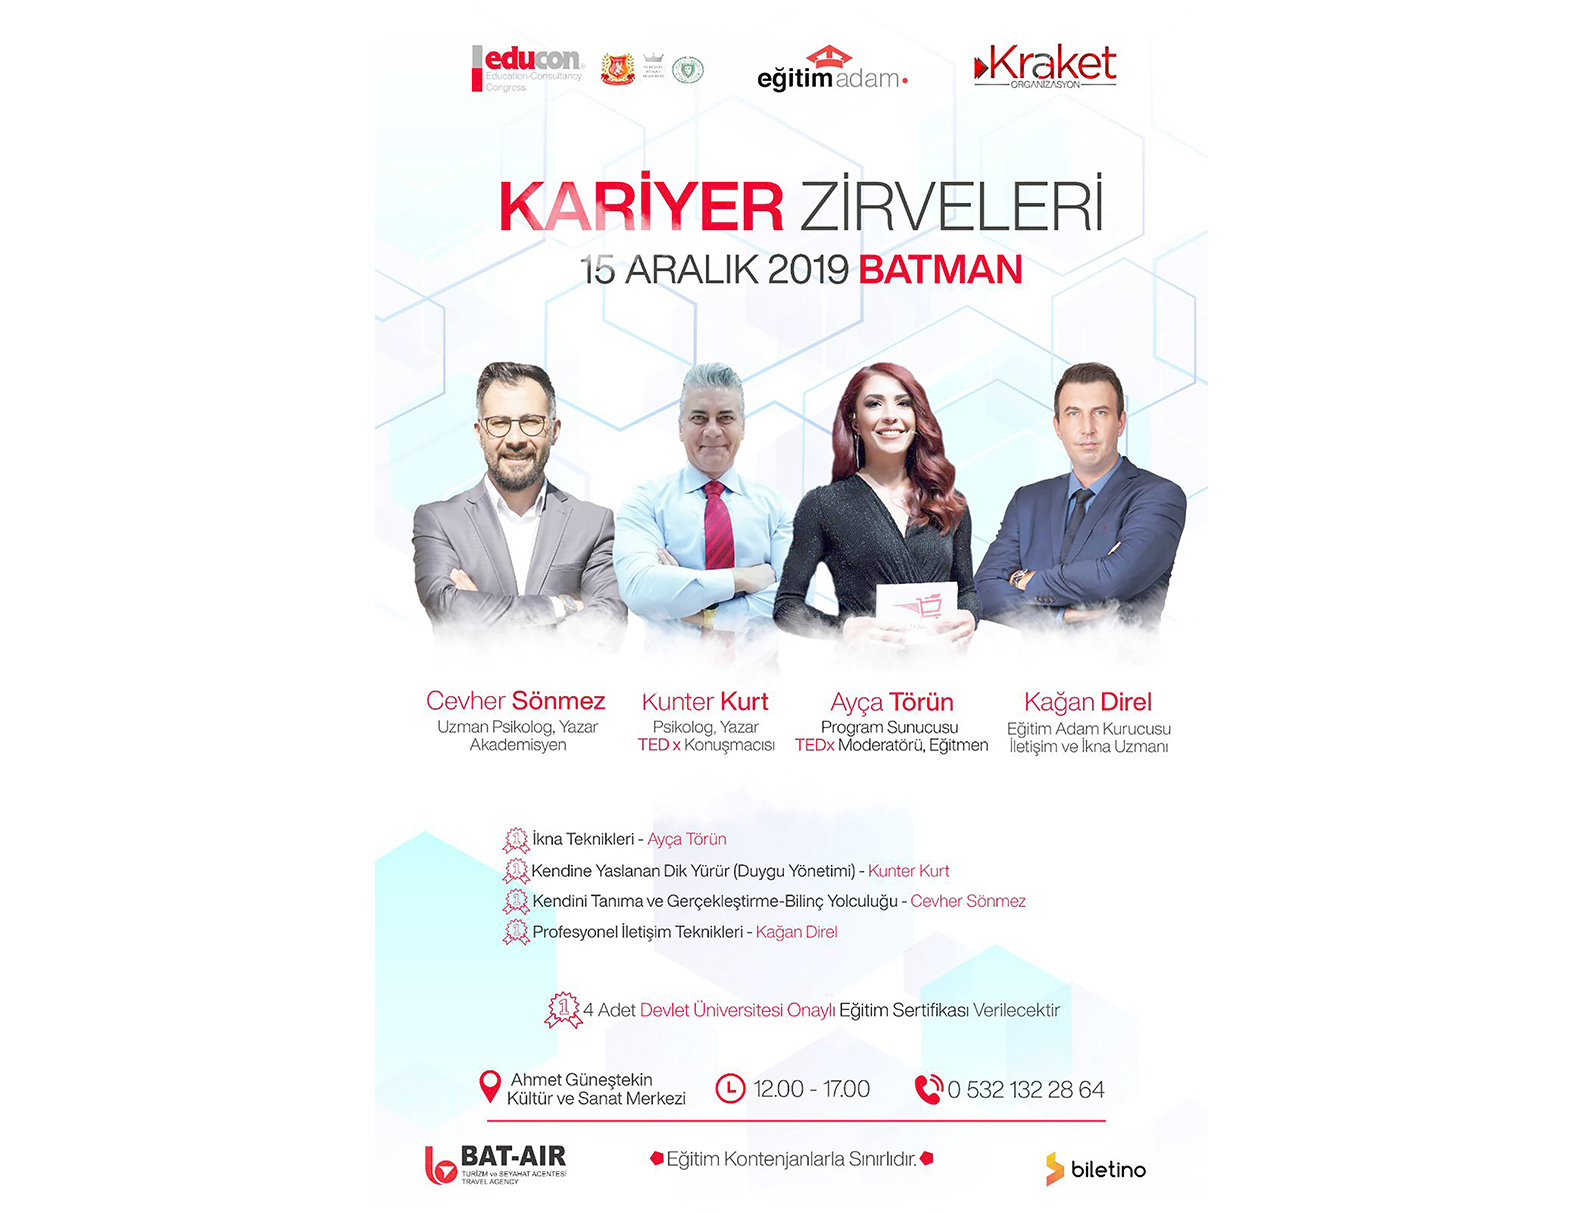 BAT-AİR'DEN KARİYER ZİRVESİ